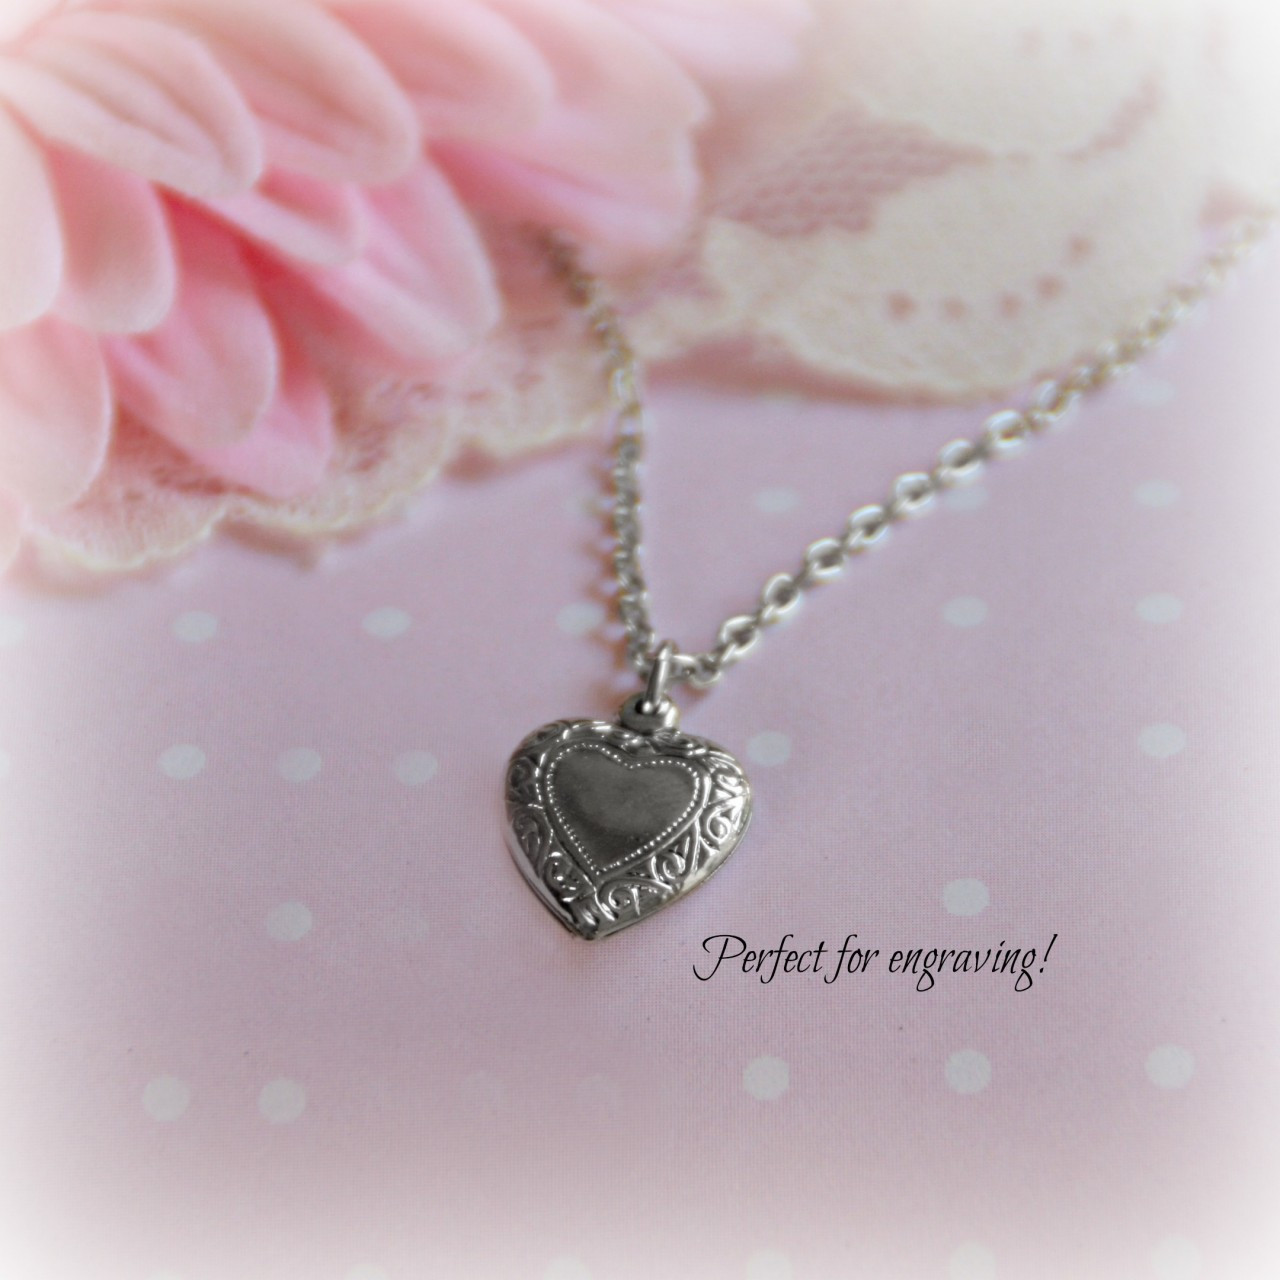 RH-37  Puffed Heart Rhodium Engravable Necklace